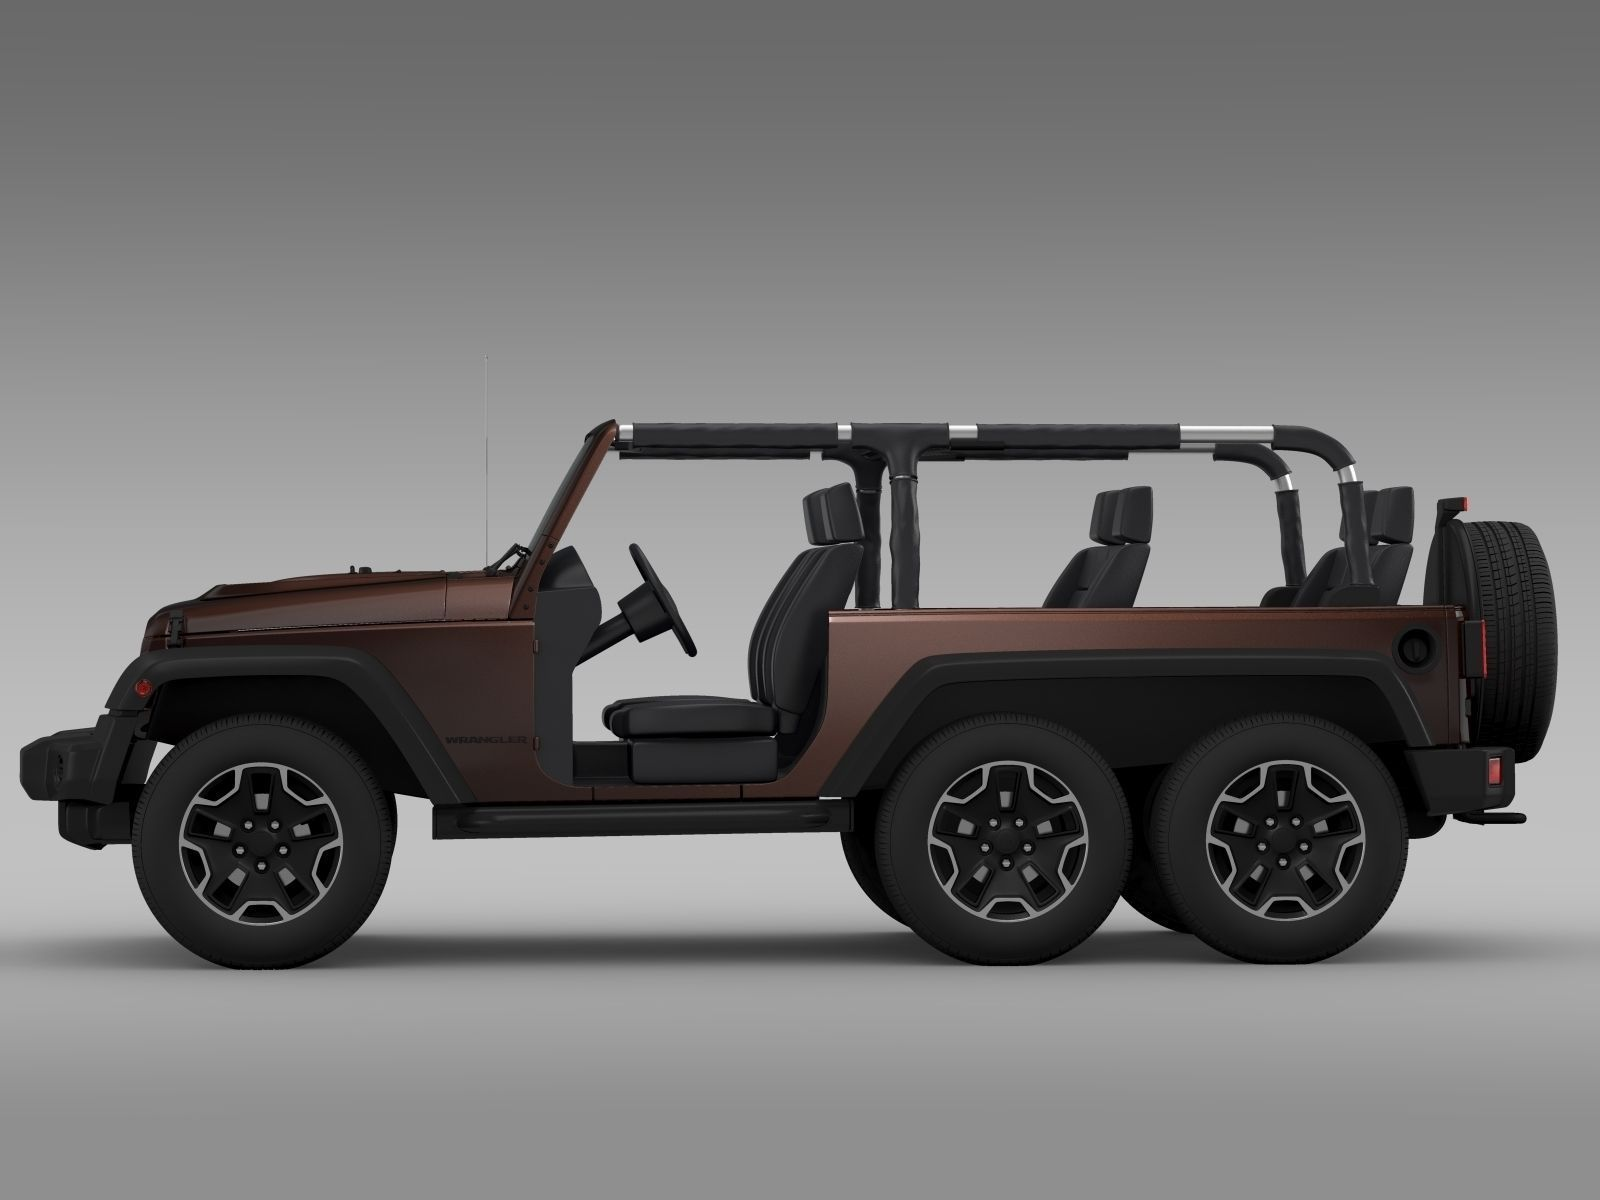 Jeep Wrangler Rubicon 6x6 2016 3d Model Cgtrader